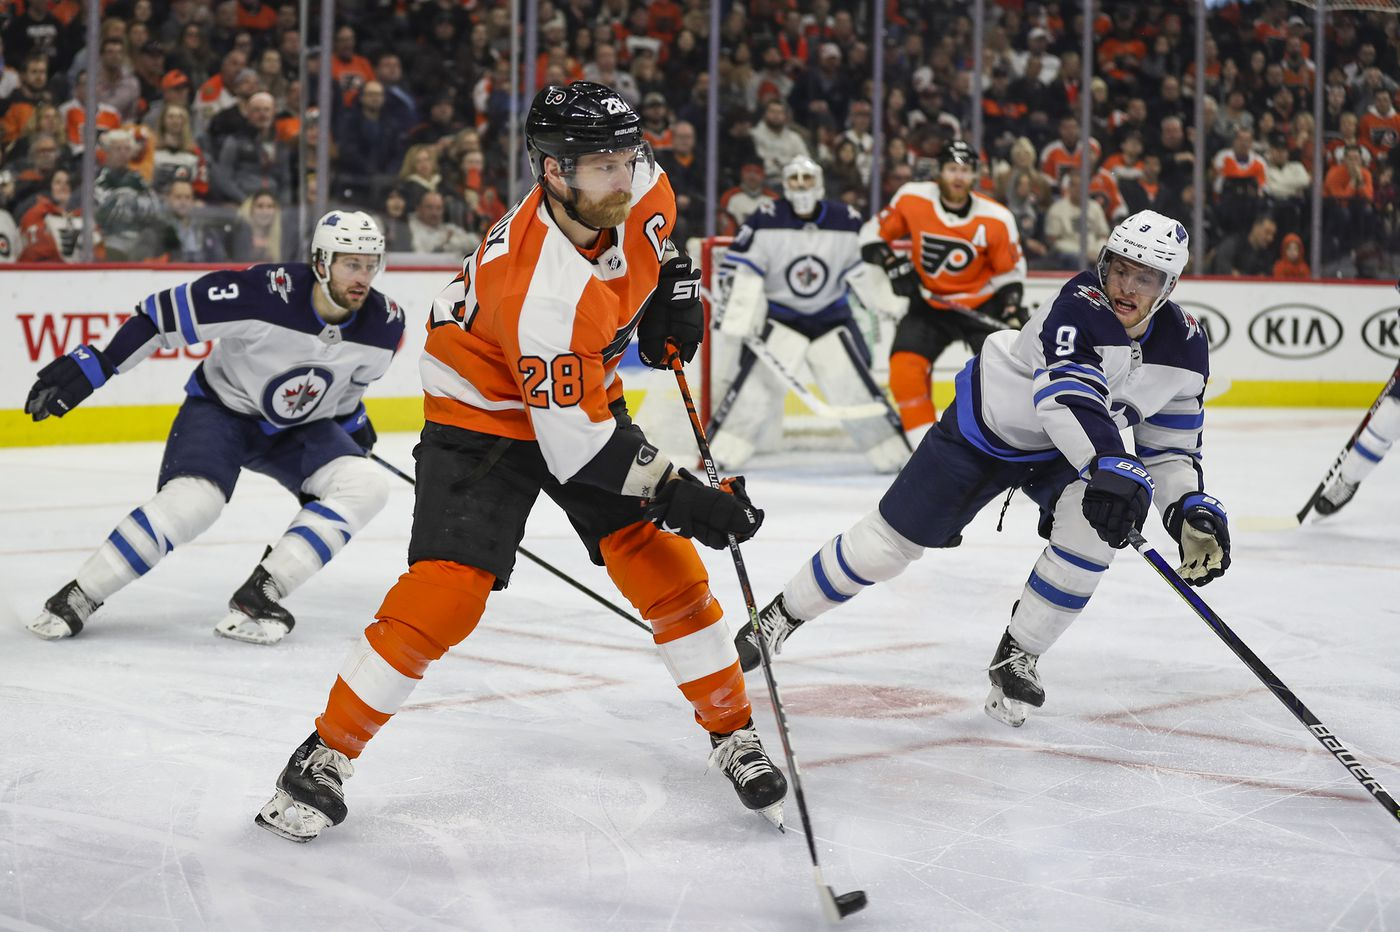 The NHL returns as league and players' union ratify CBA and agree to restart season; Flyers open Aug. 2 vs. Boston